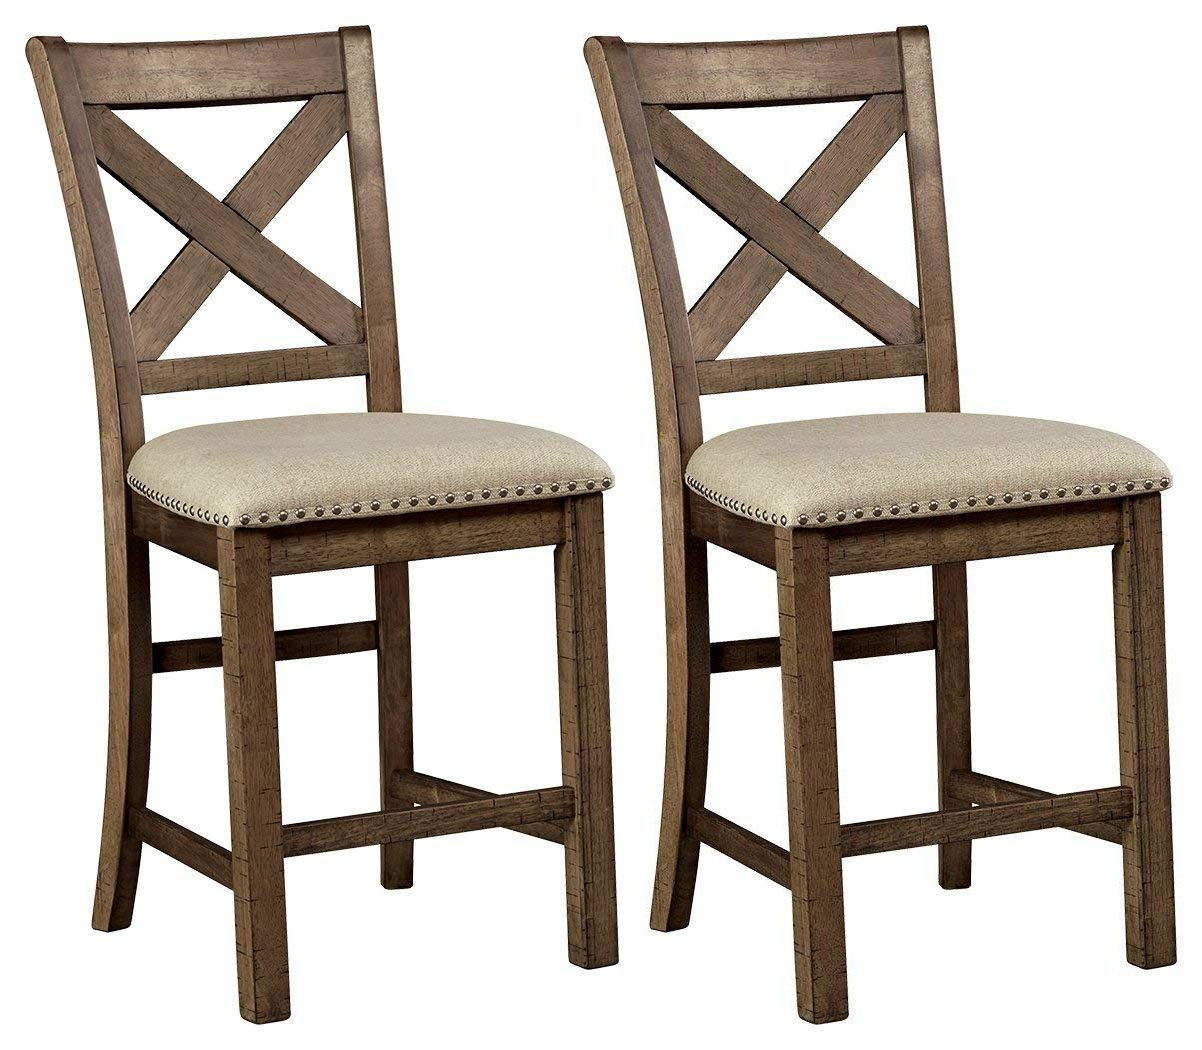 Signature Design by Ashley Rustic Style Pub Height Moriville Bar Stool (Set of 2), Morriville